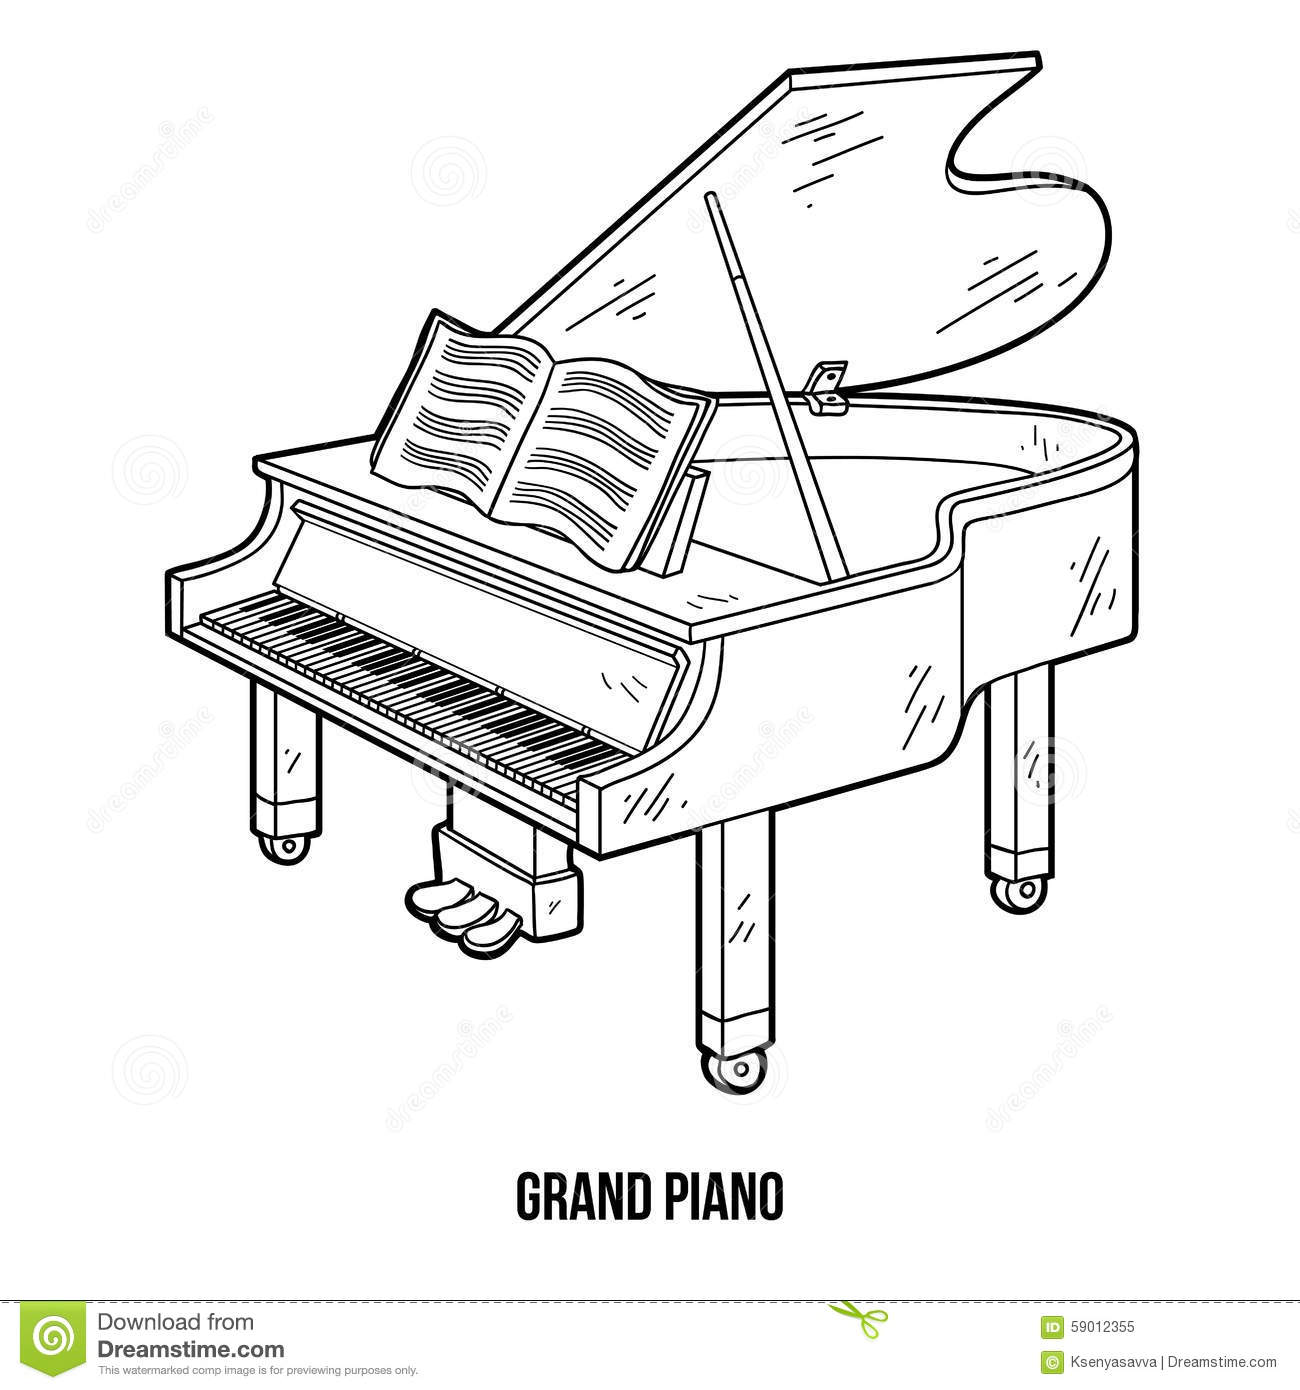 Livre de coloriage instruments de musique piano queue - Coloriage piano ...